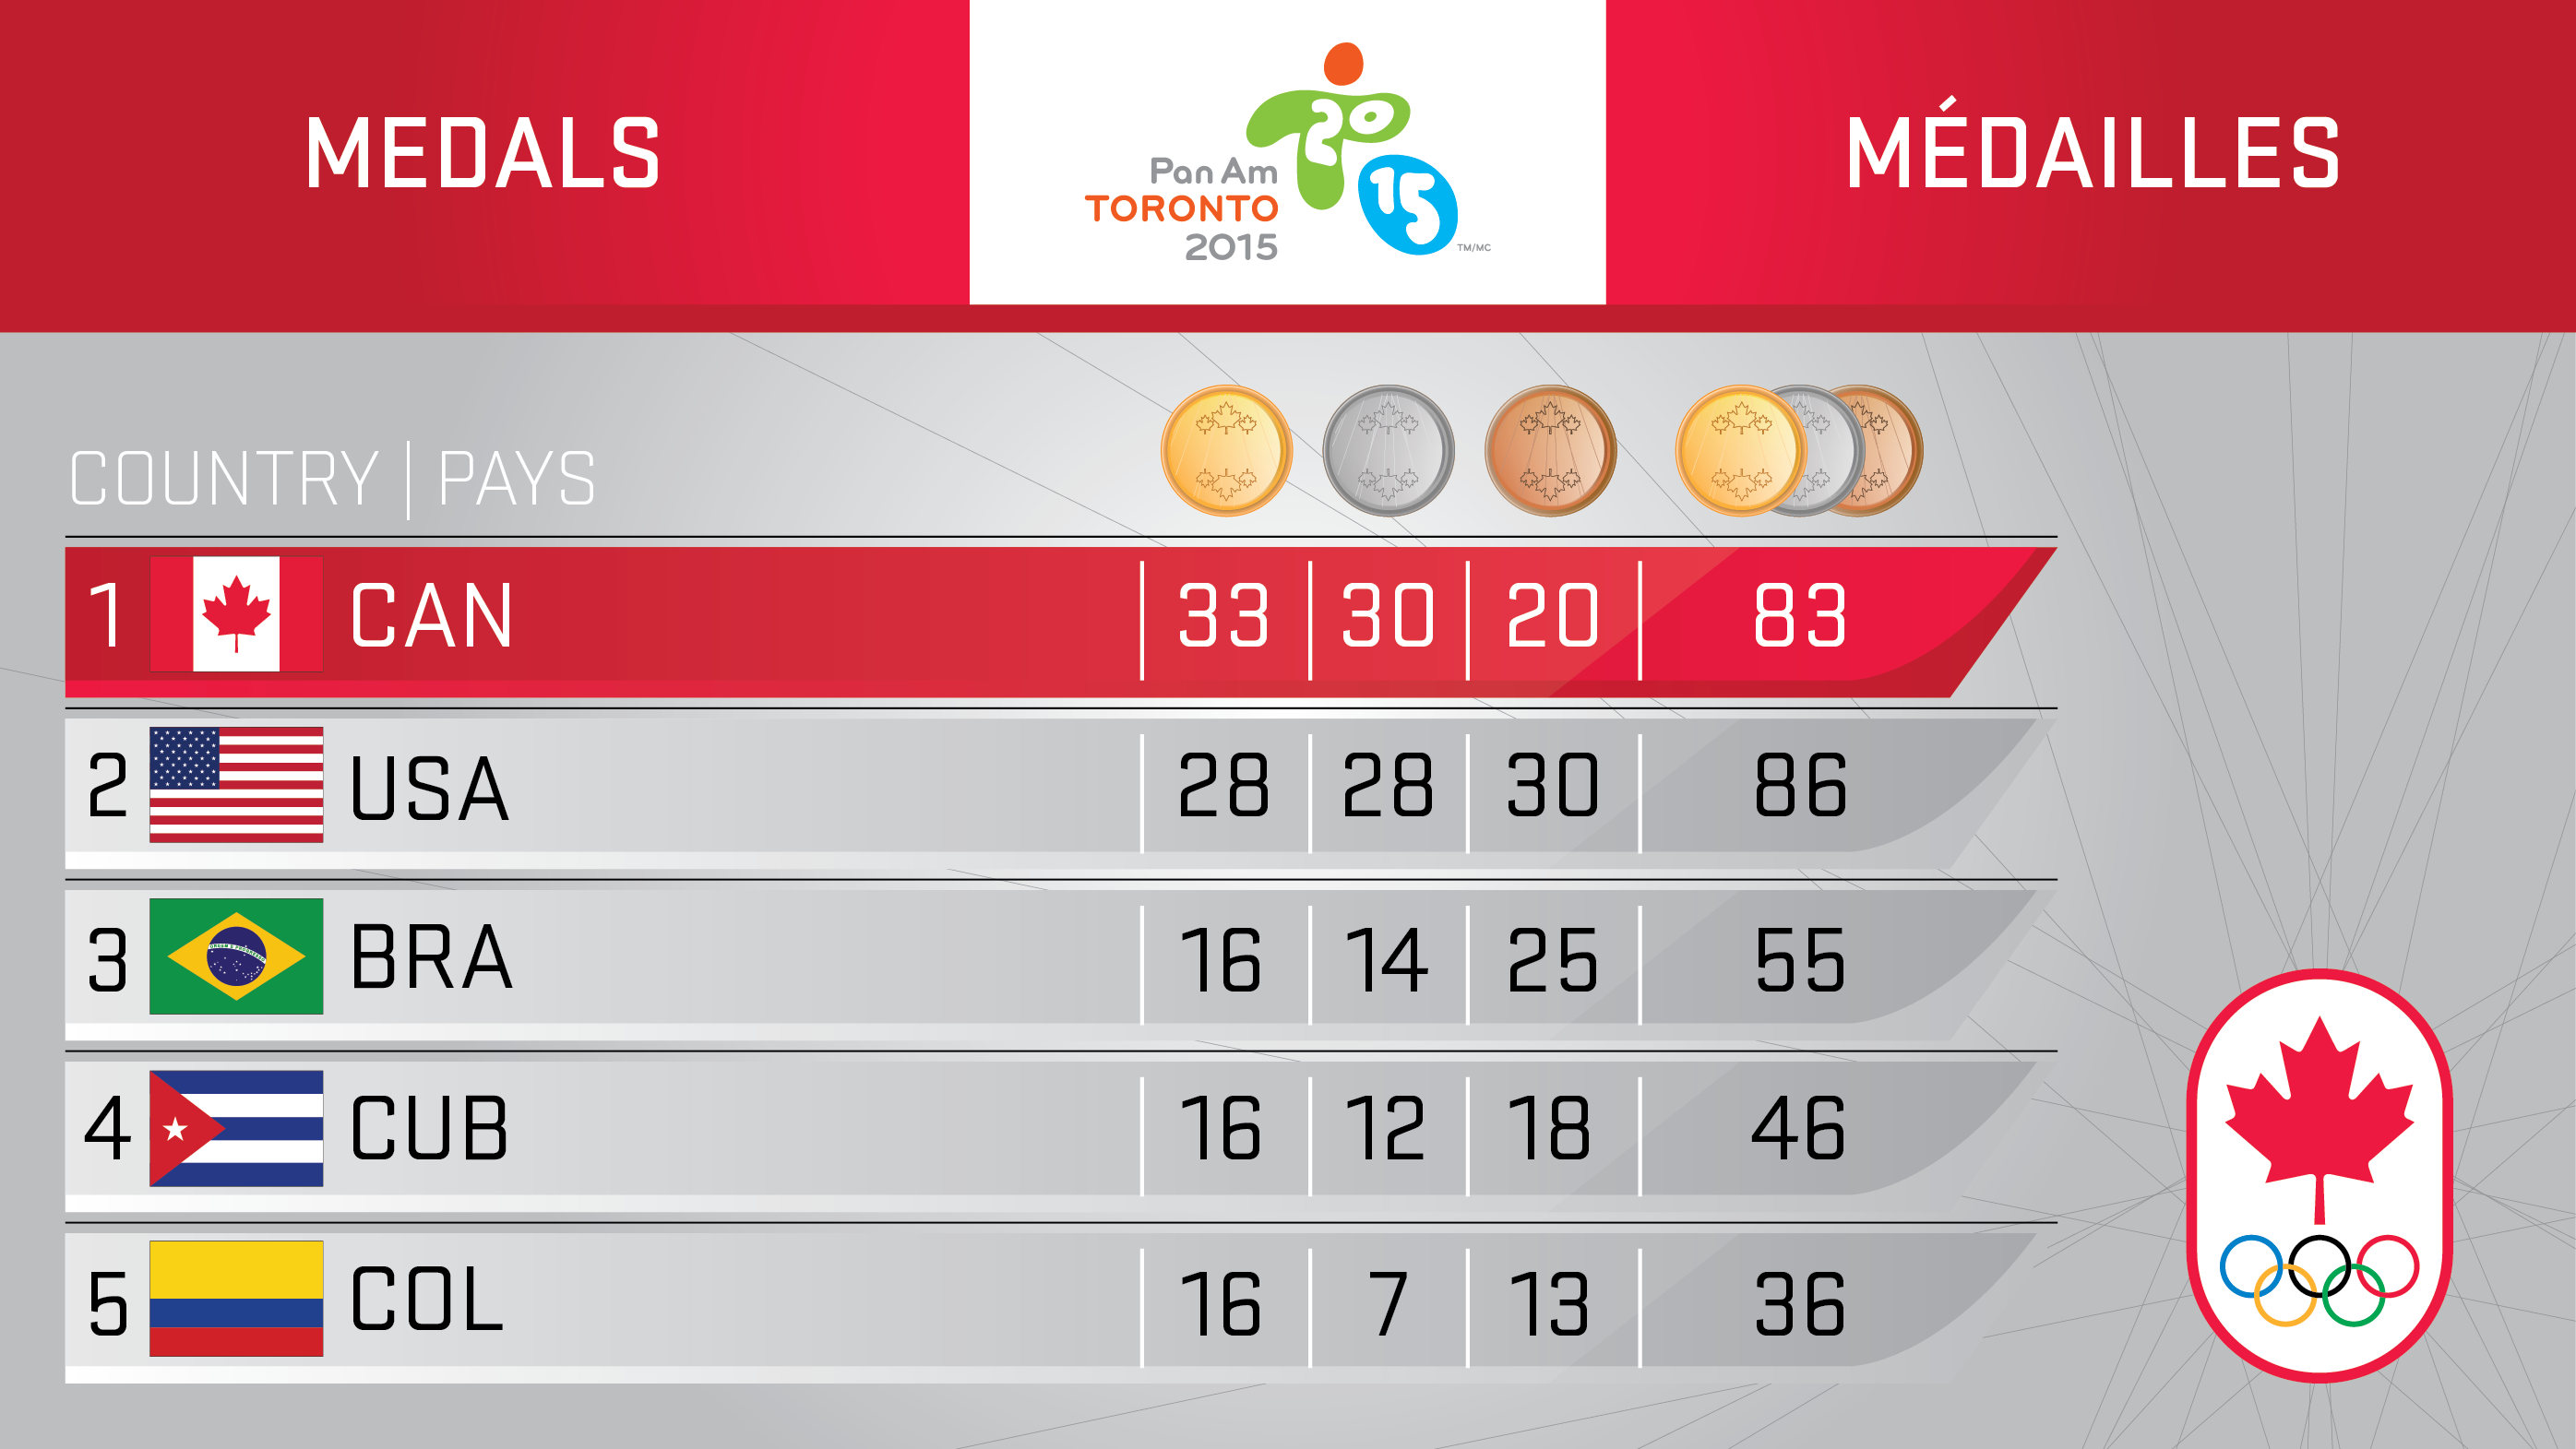 Day 5 Medal Count